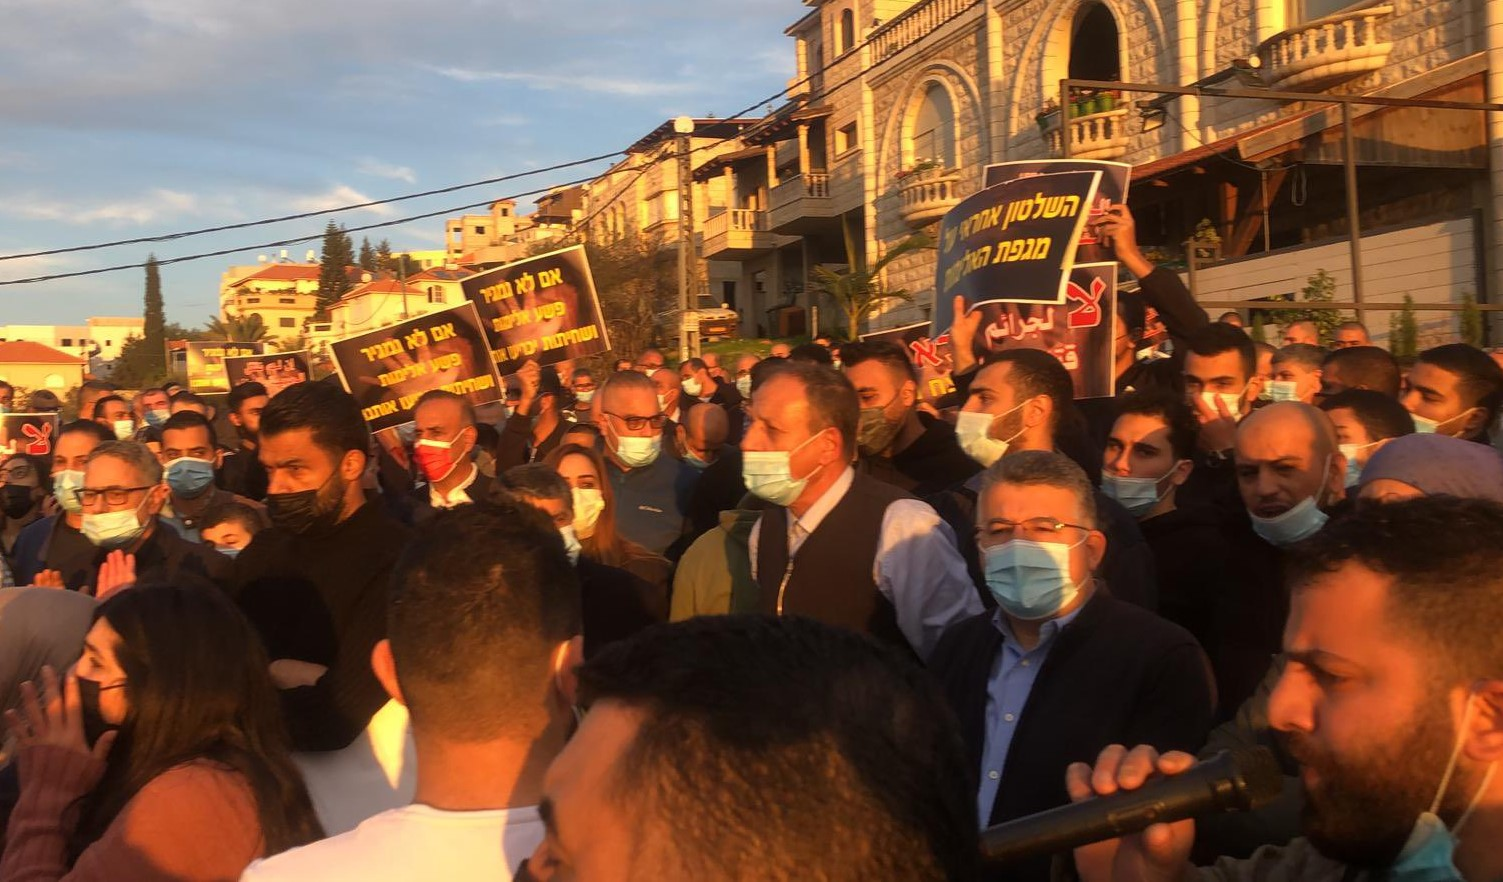 Hundreds of protestors marched in Umm al-Fahm a day after the serious wounding of the former mayor of the city, Dr. Suleiman Aghbariah, on Thursday, January 7. Among the protestors was Hadash MK Youssef Jabareen (second from right, wearing glasses) a resident of the city.